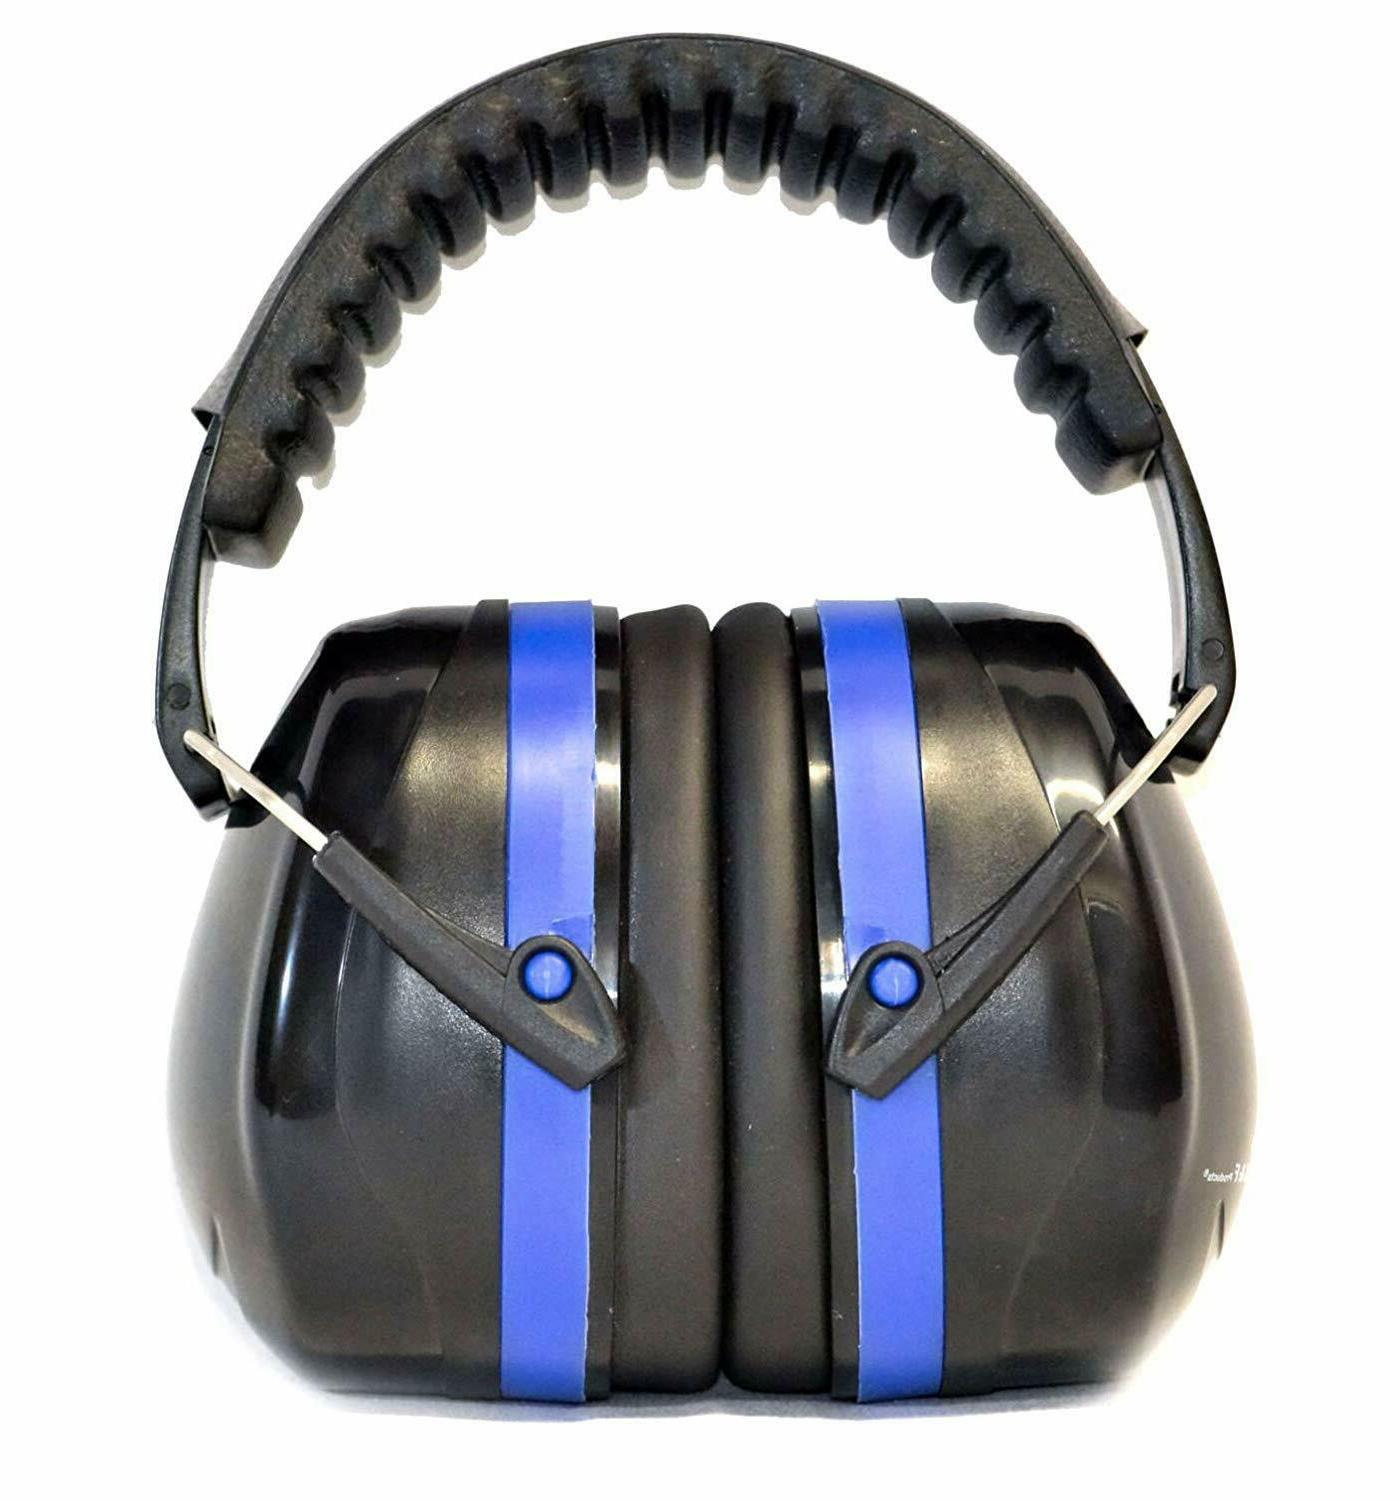 NRR Safety Hearing Protection